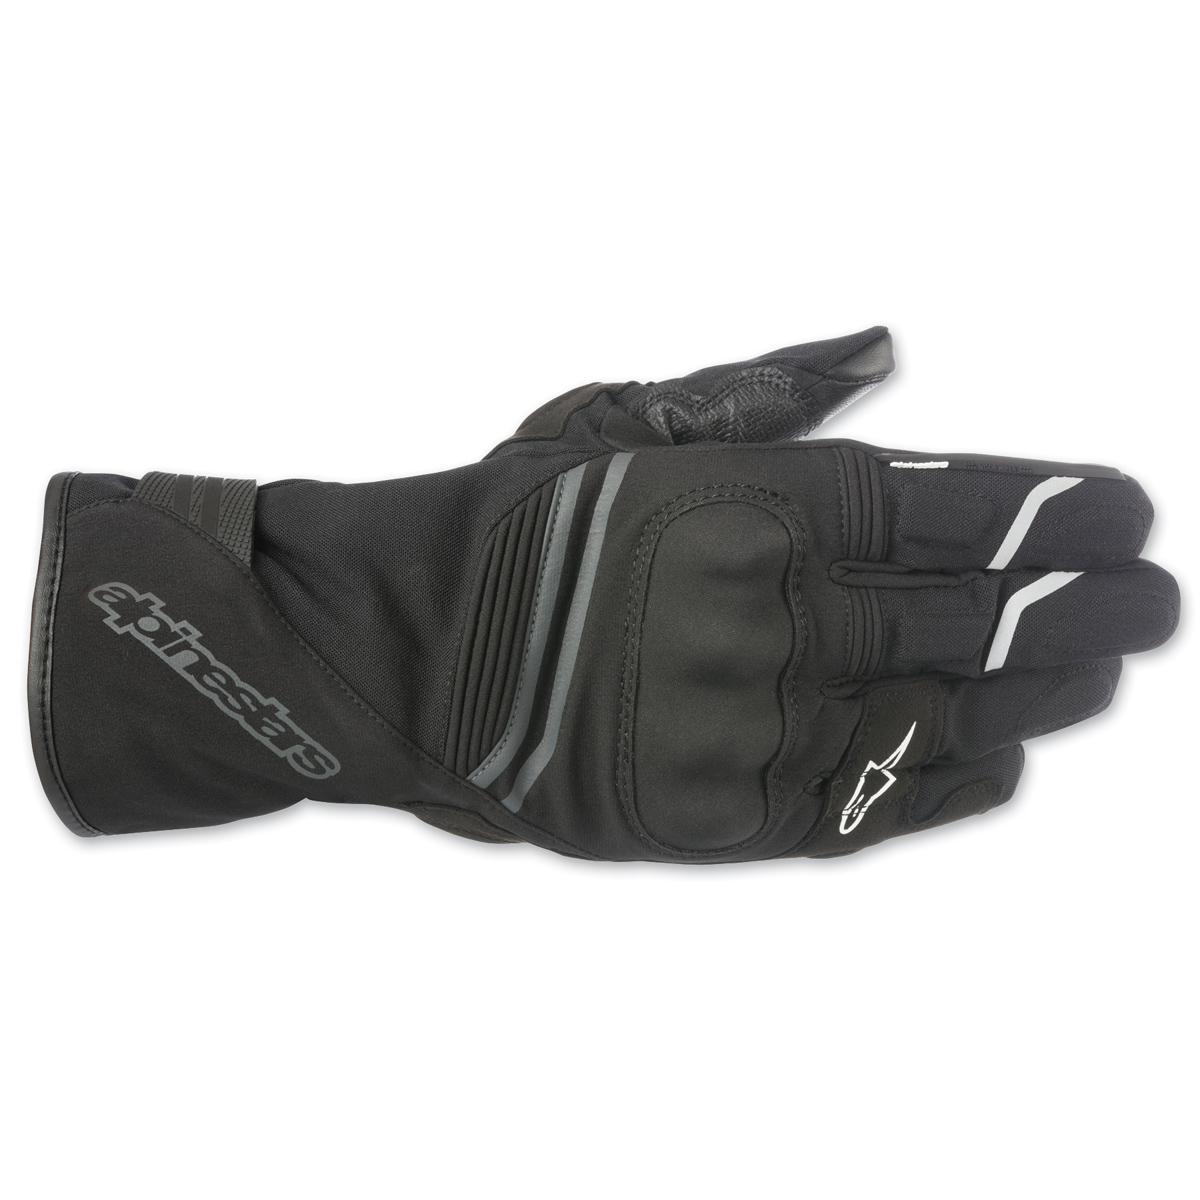 Alpinestars Men's Equinox Outdry Black Gloves